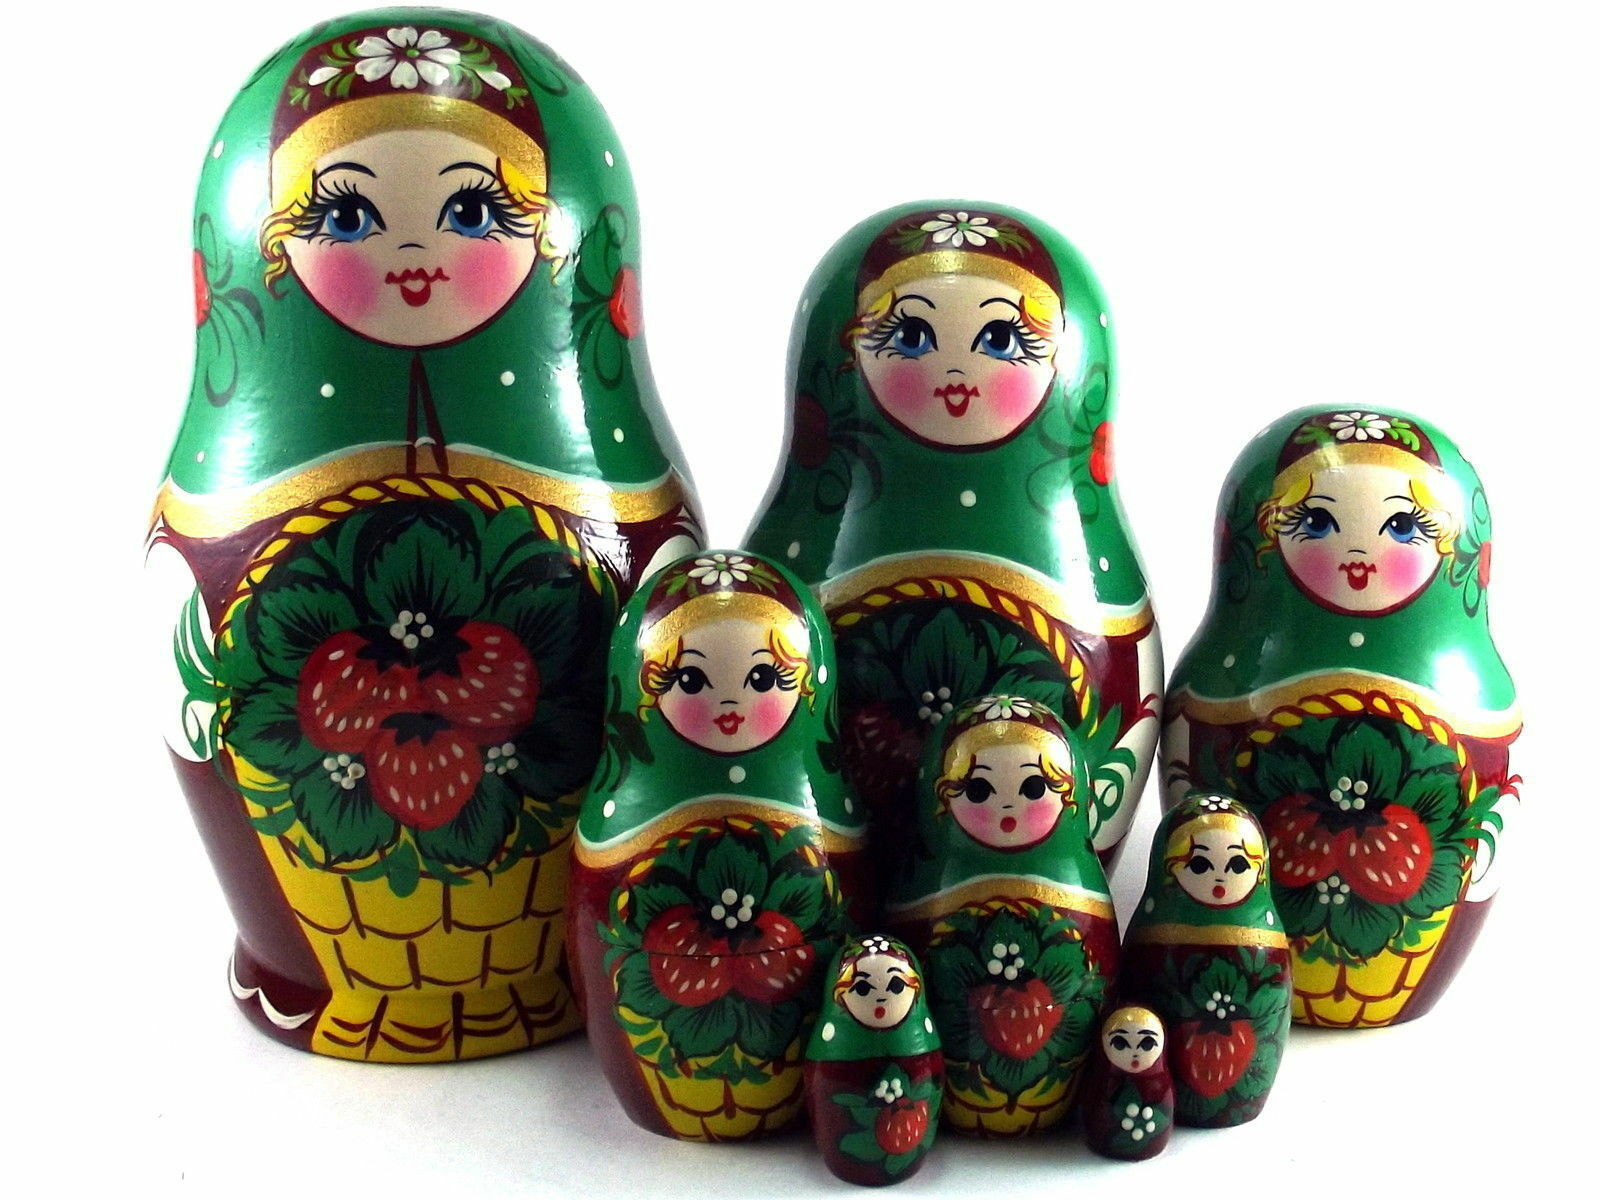 Nidification poupées Russe Matriochka traditionnelle babushka empilable Nouvelle set 8 pcs 6 in (environ 15.24 cm)